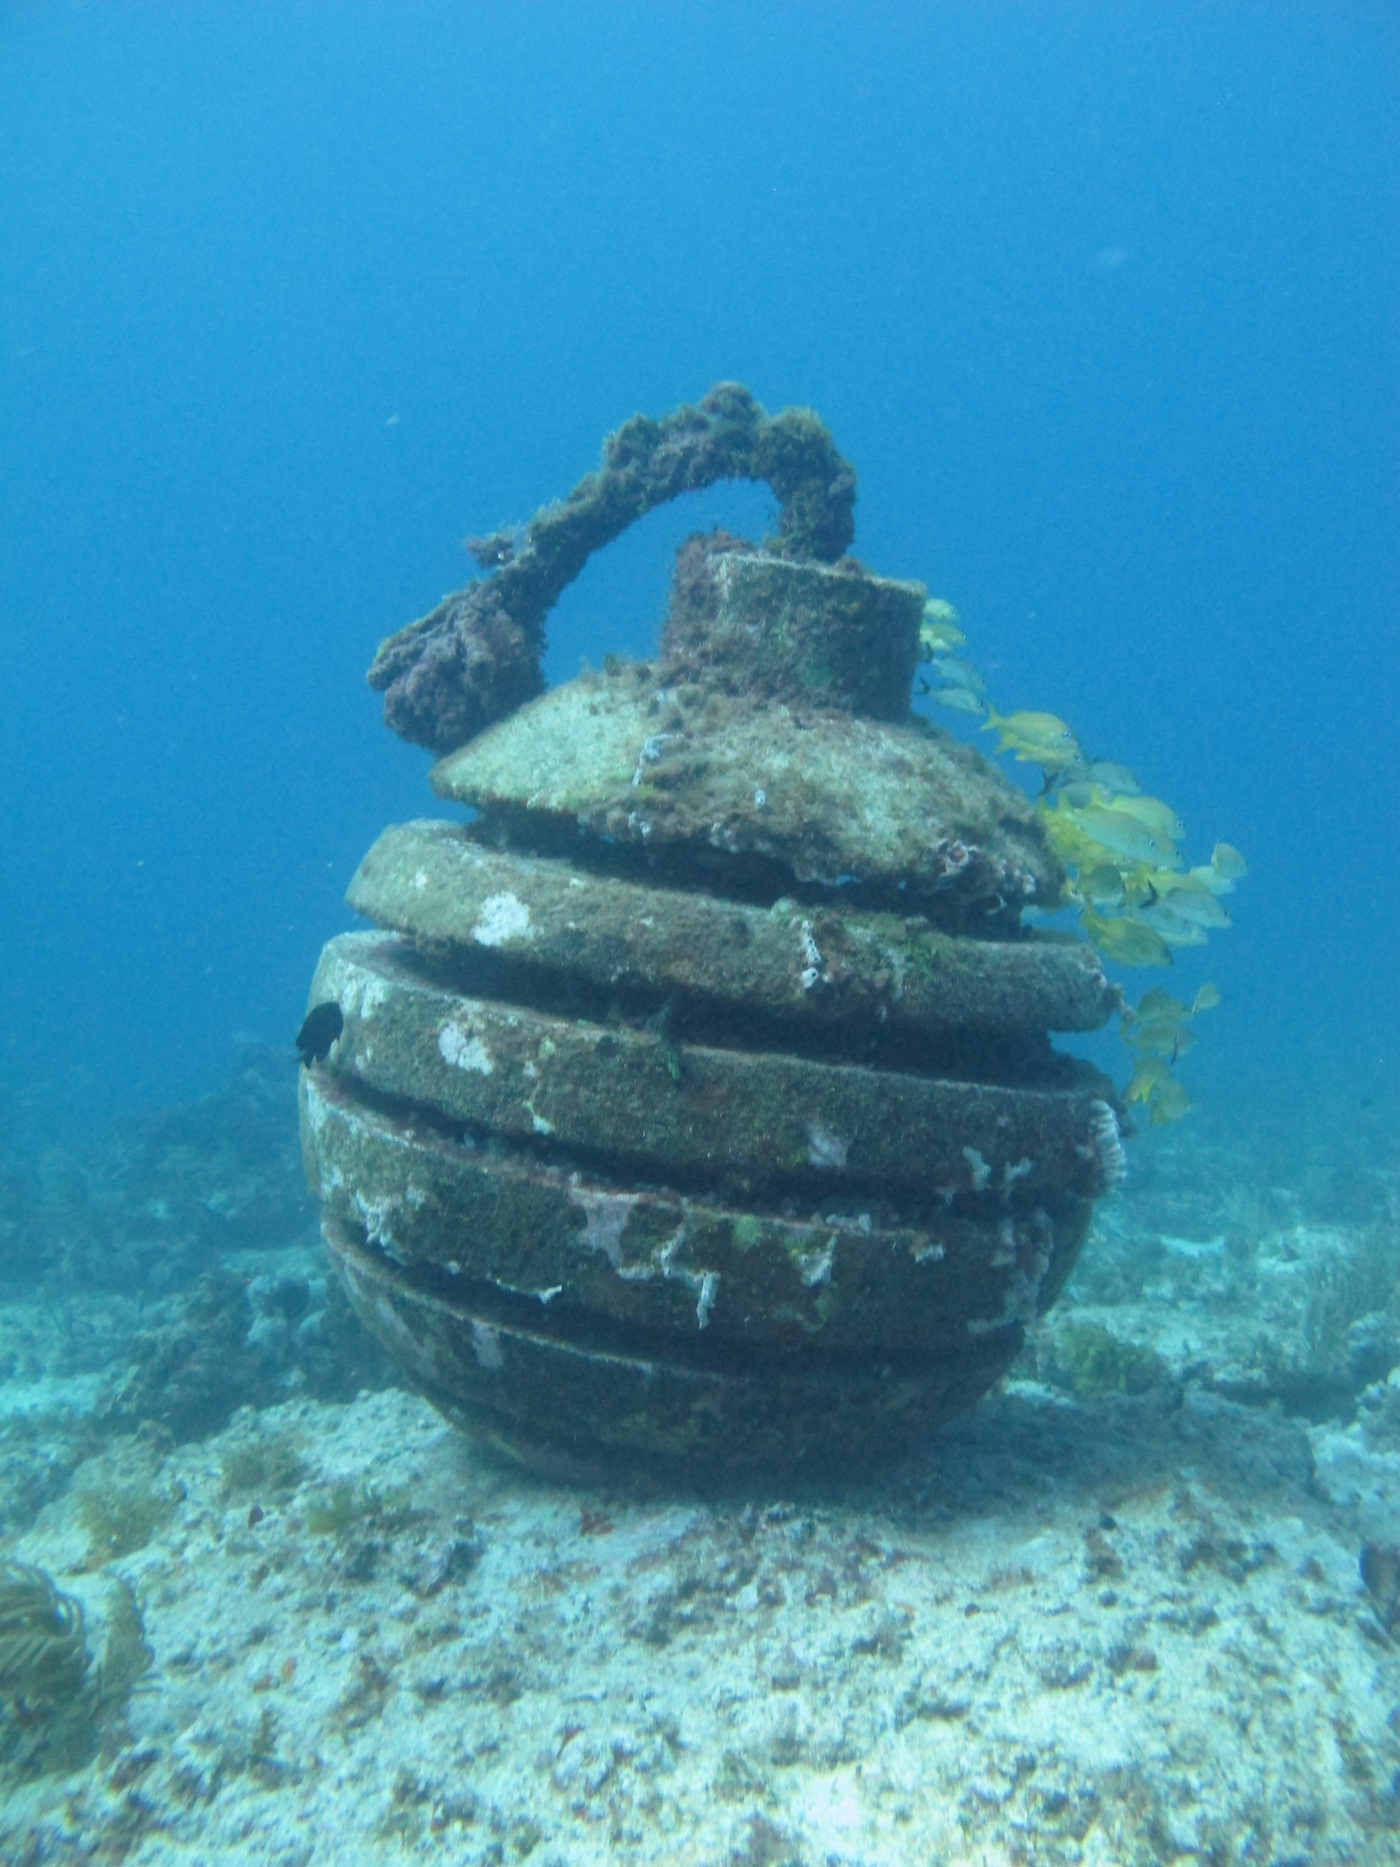 MUSA-Underwater-Museum-Snorkeling-Scuba-Diving-Tours-Isla-Mujeres-Carey-Dive-Center-7